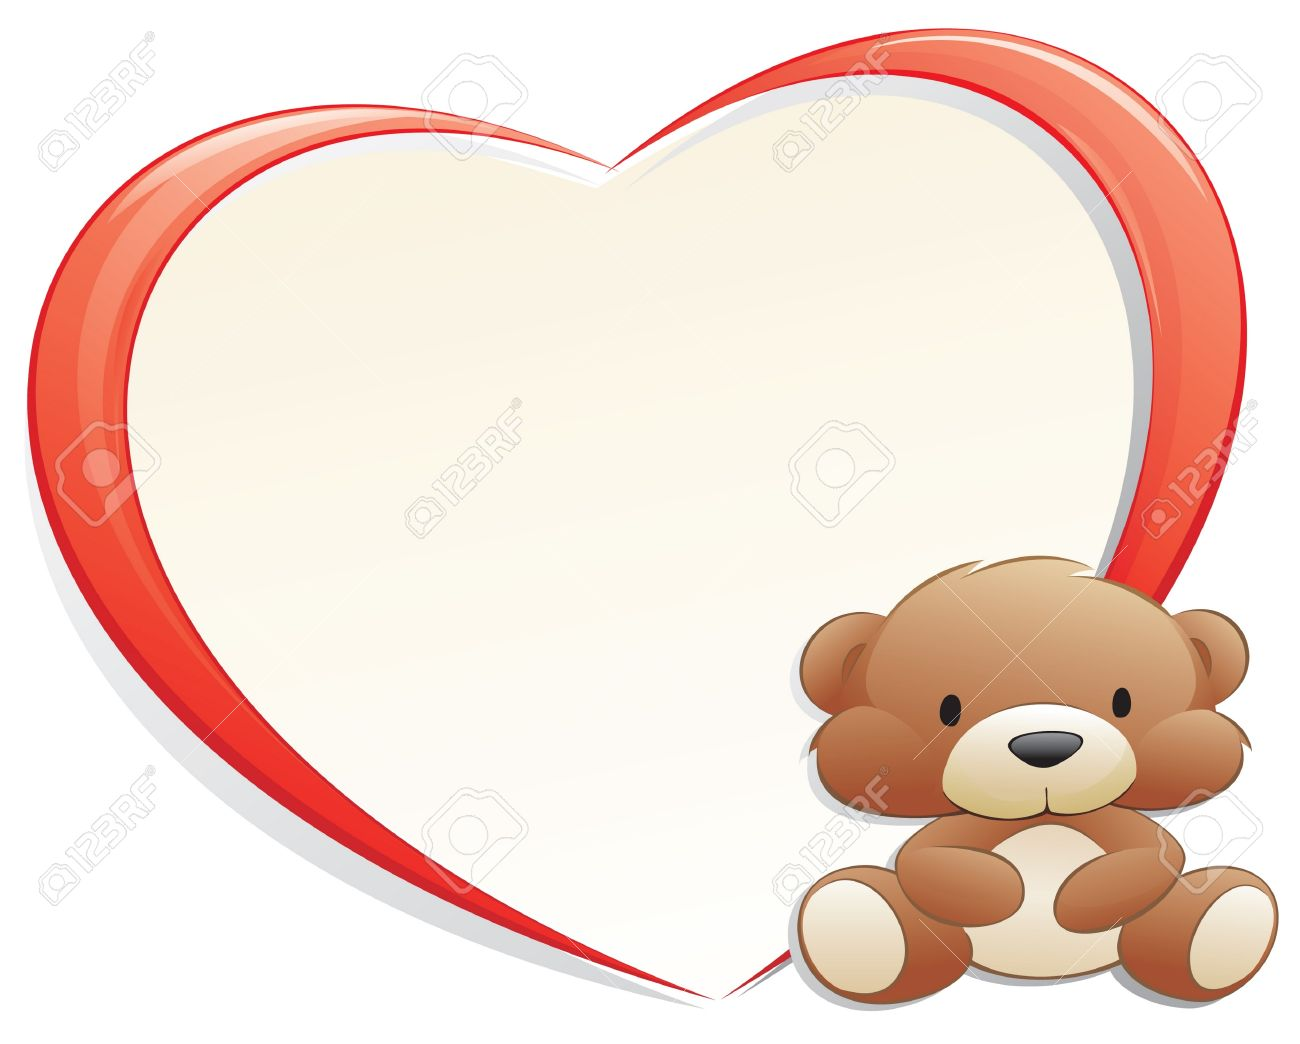 Teddy Bear With Heart-shaped Frame For Design Element Royalty Free ...